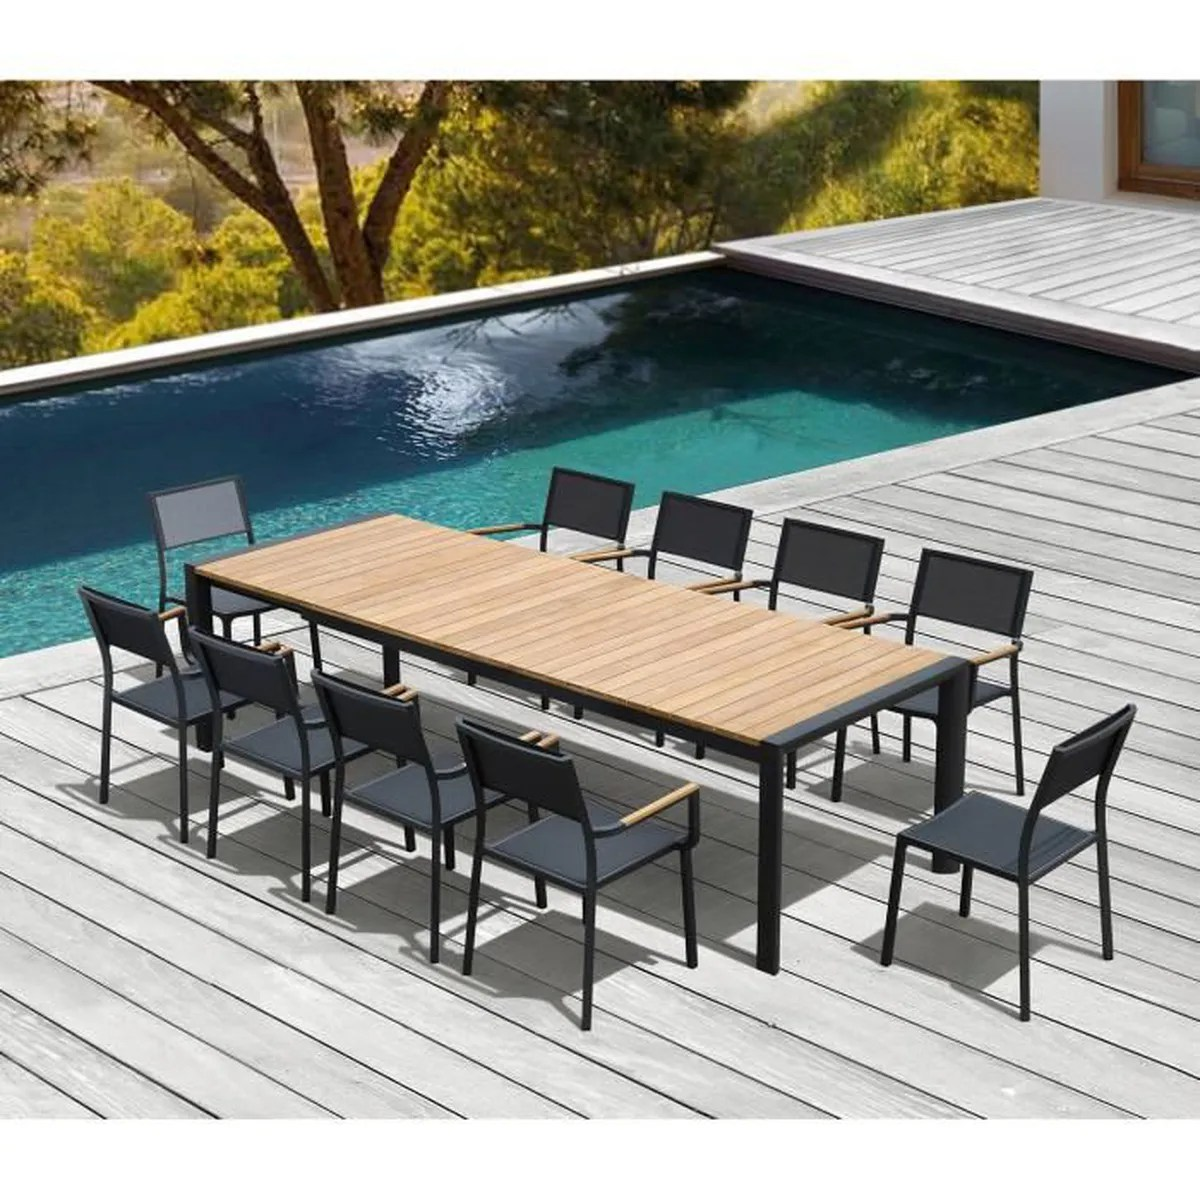 Salon De Jardin Composite Extensible Salon De Jardin Electra En Alu Anthracite Et Teck 10 Places